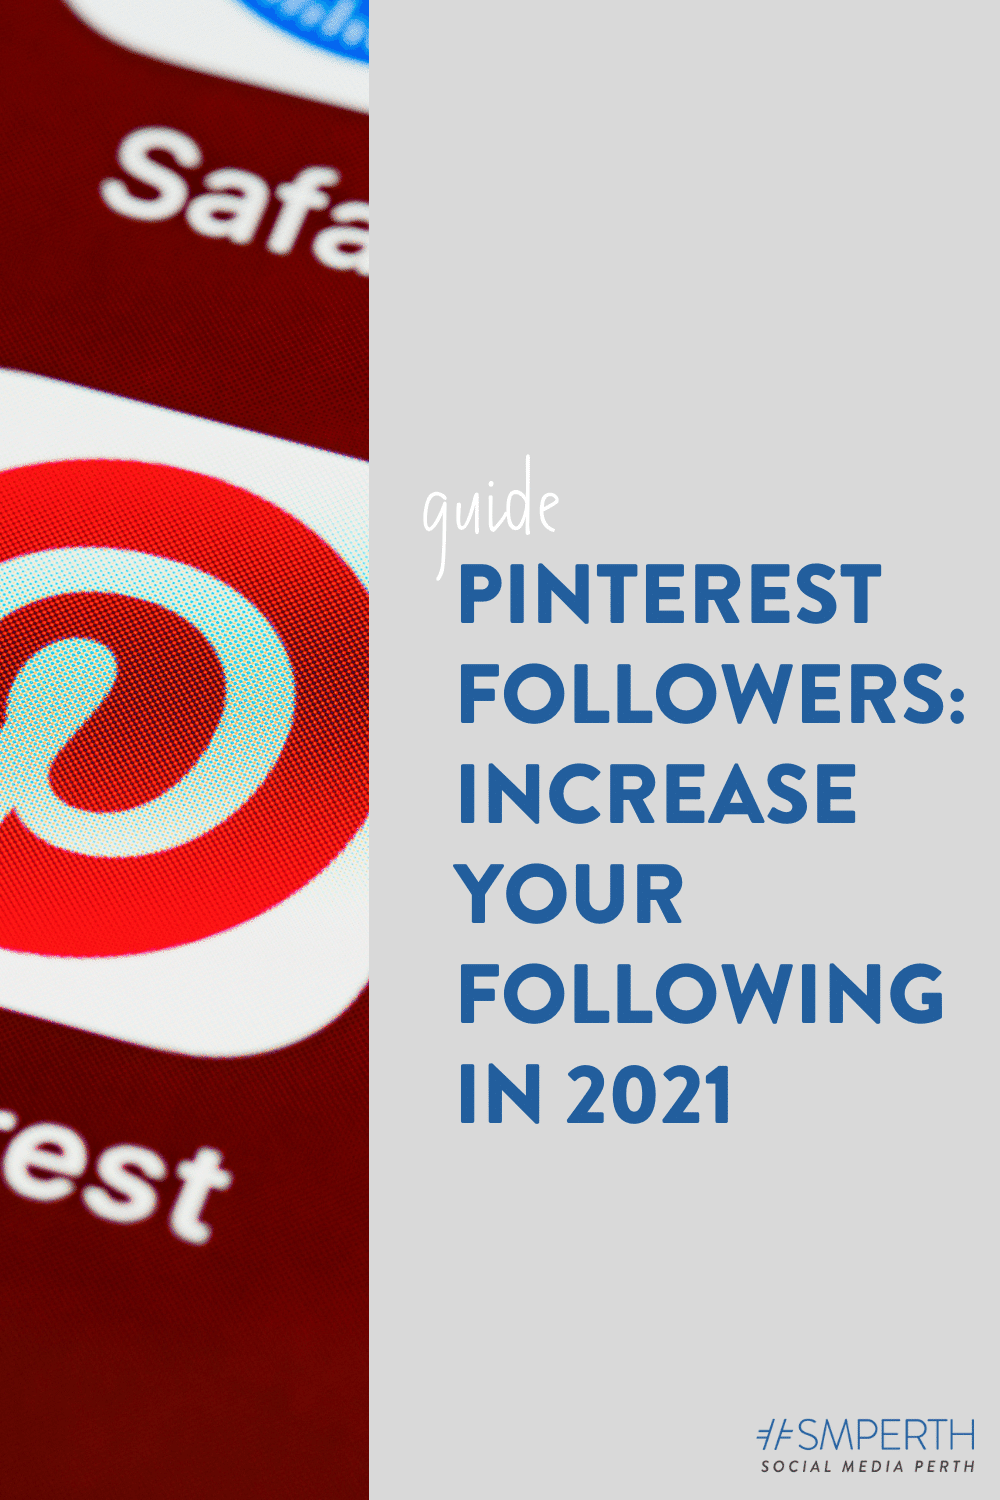 Pinterest followers: Increase your following in 2021